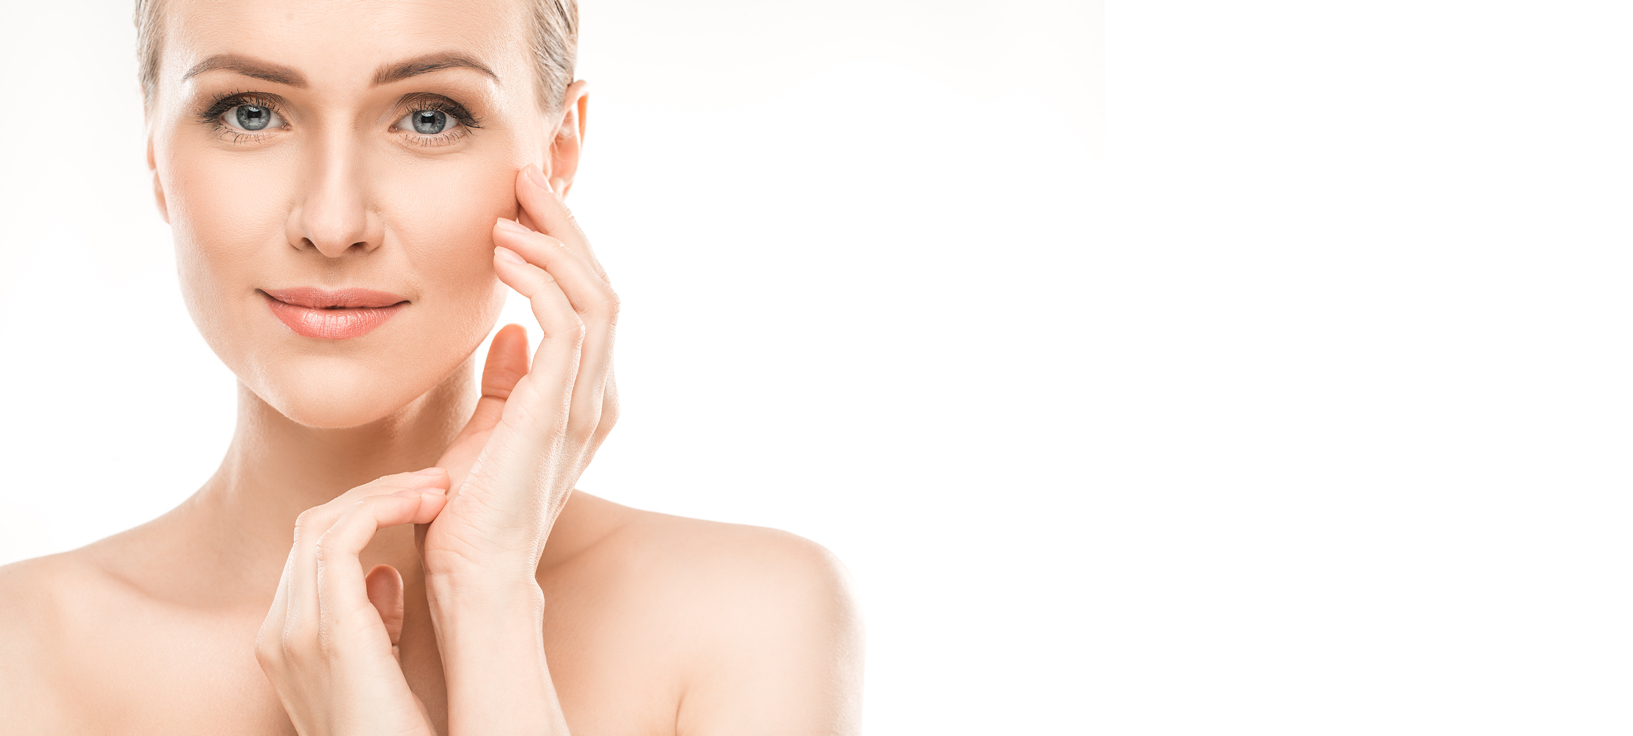 Best Treatments for Ageing Skin and Wrinkles | Thérapie Clinic